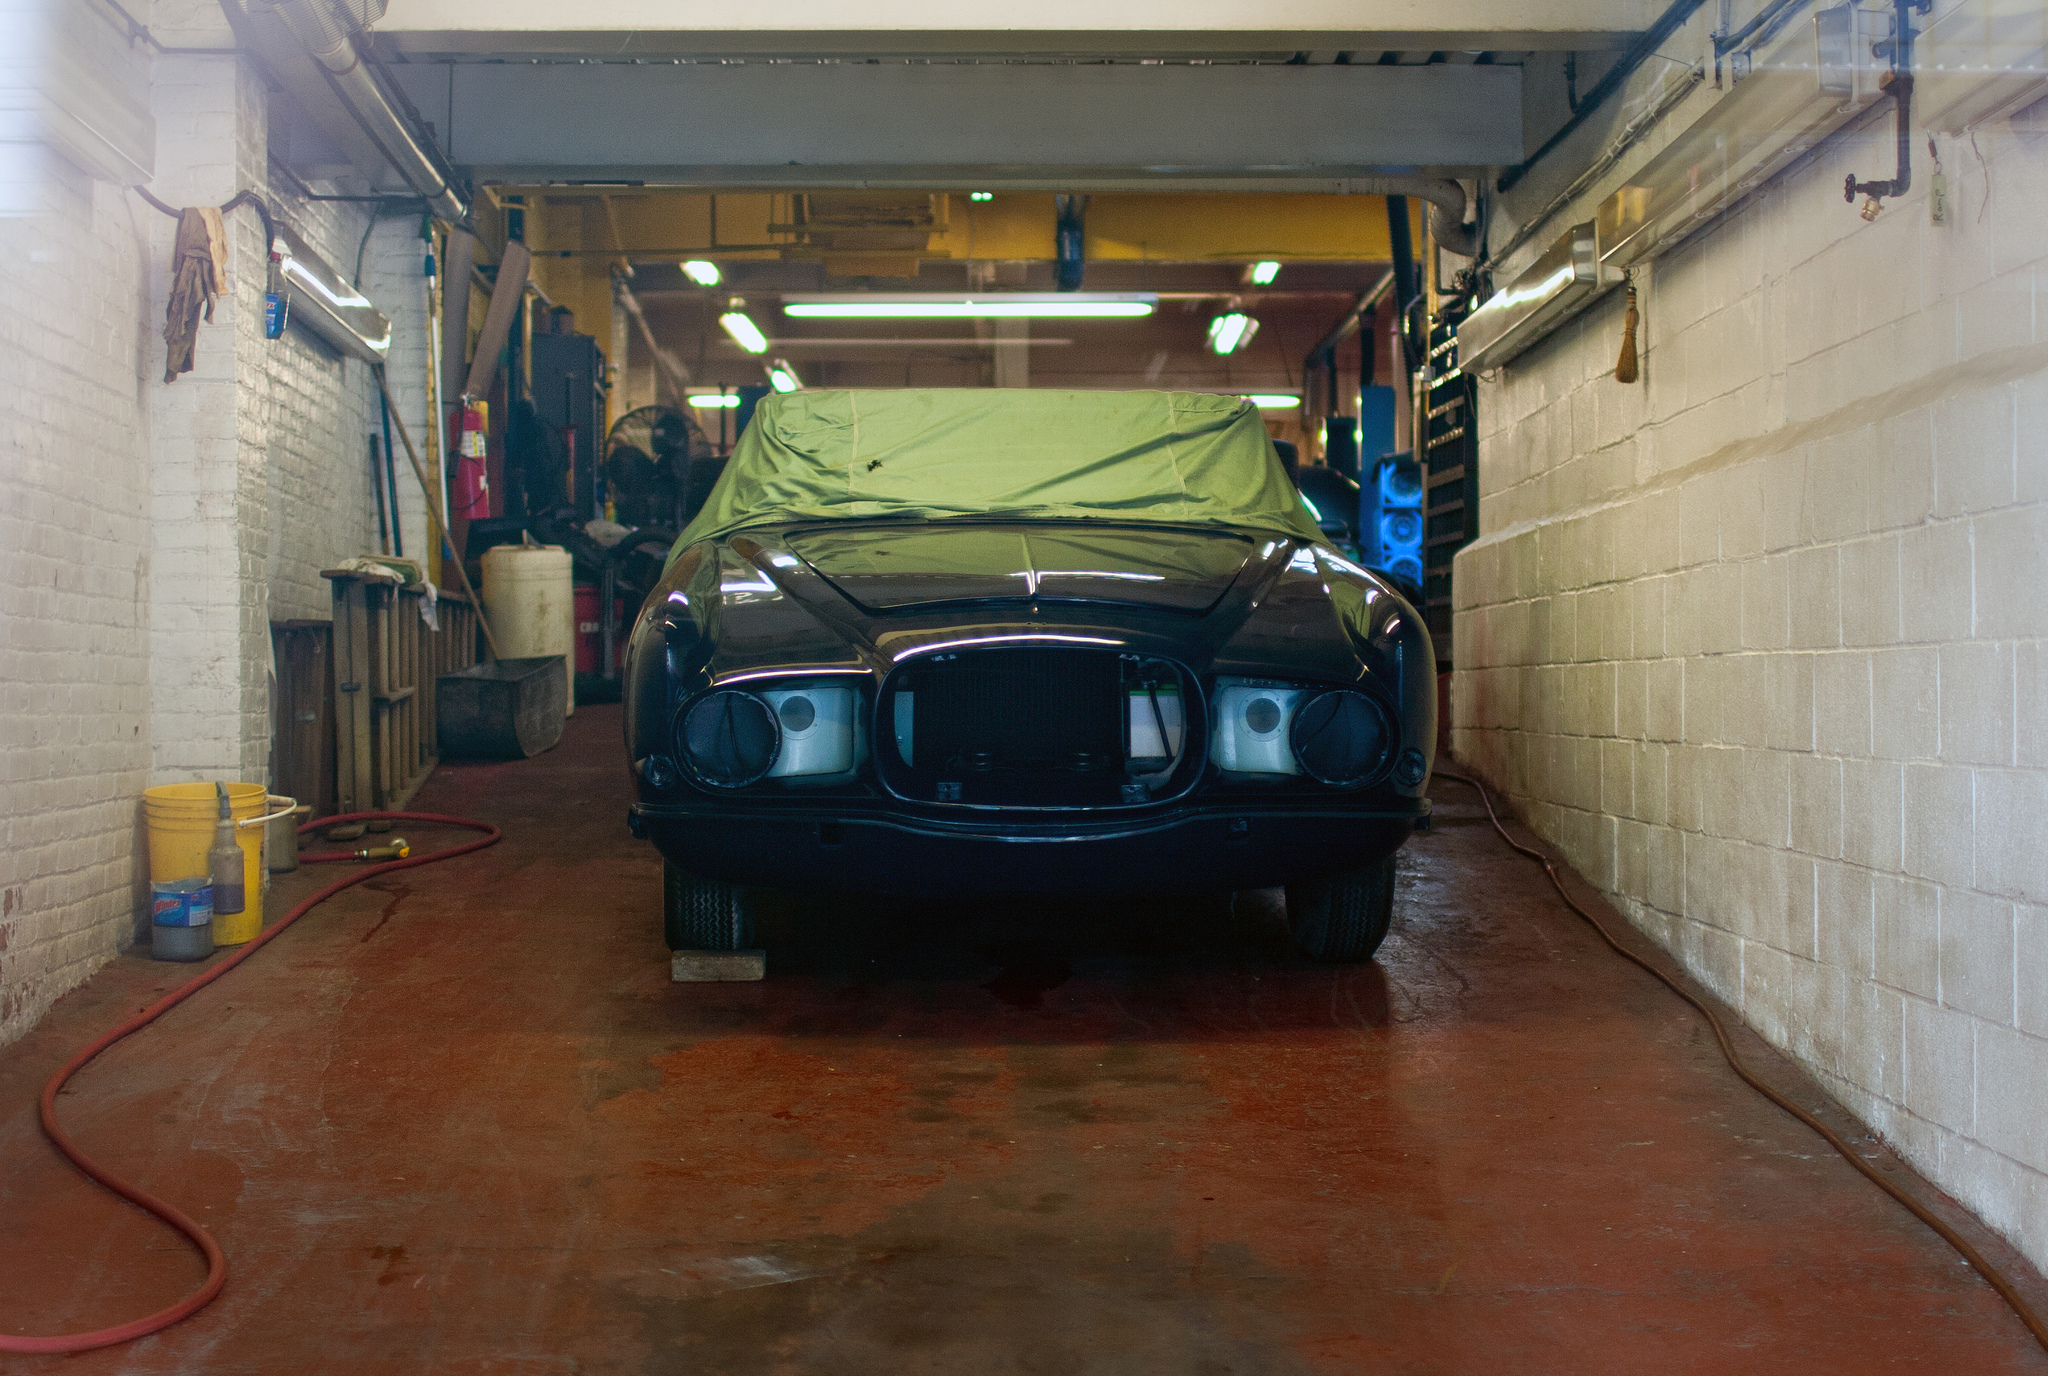 A car receiving a new paint job in the garage.